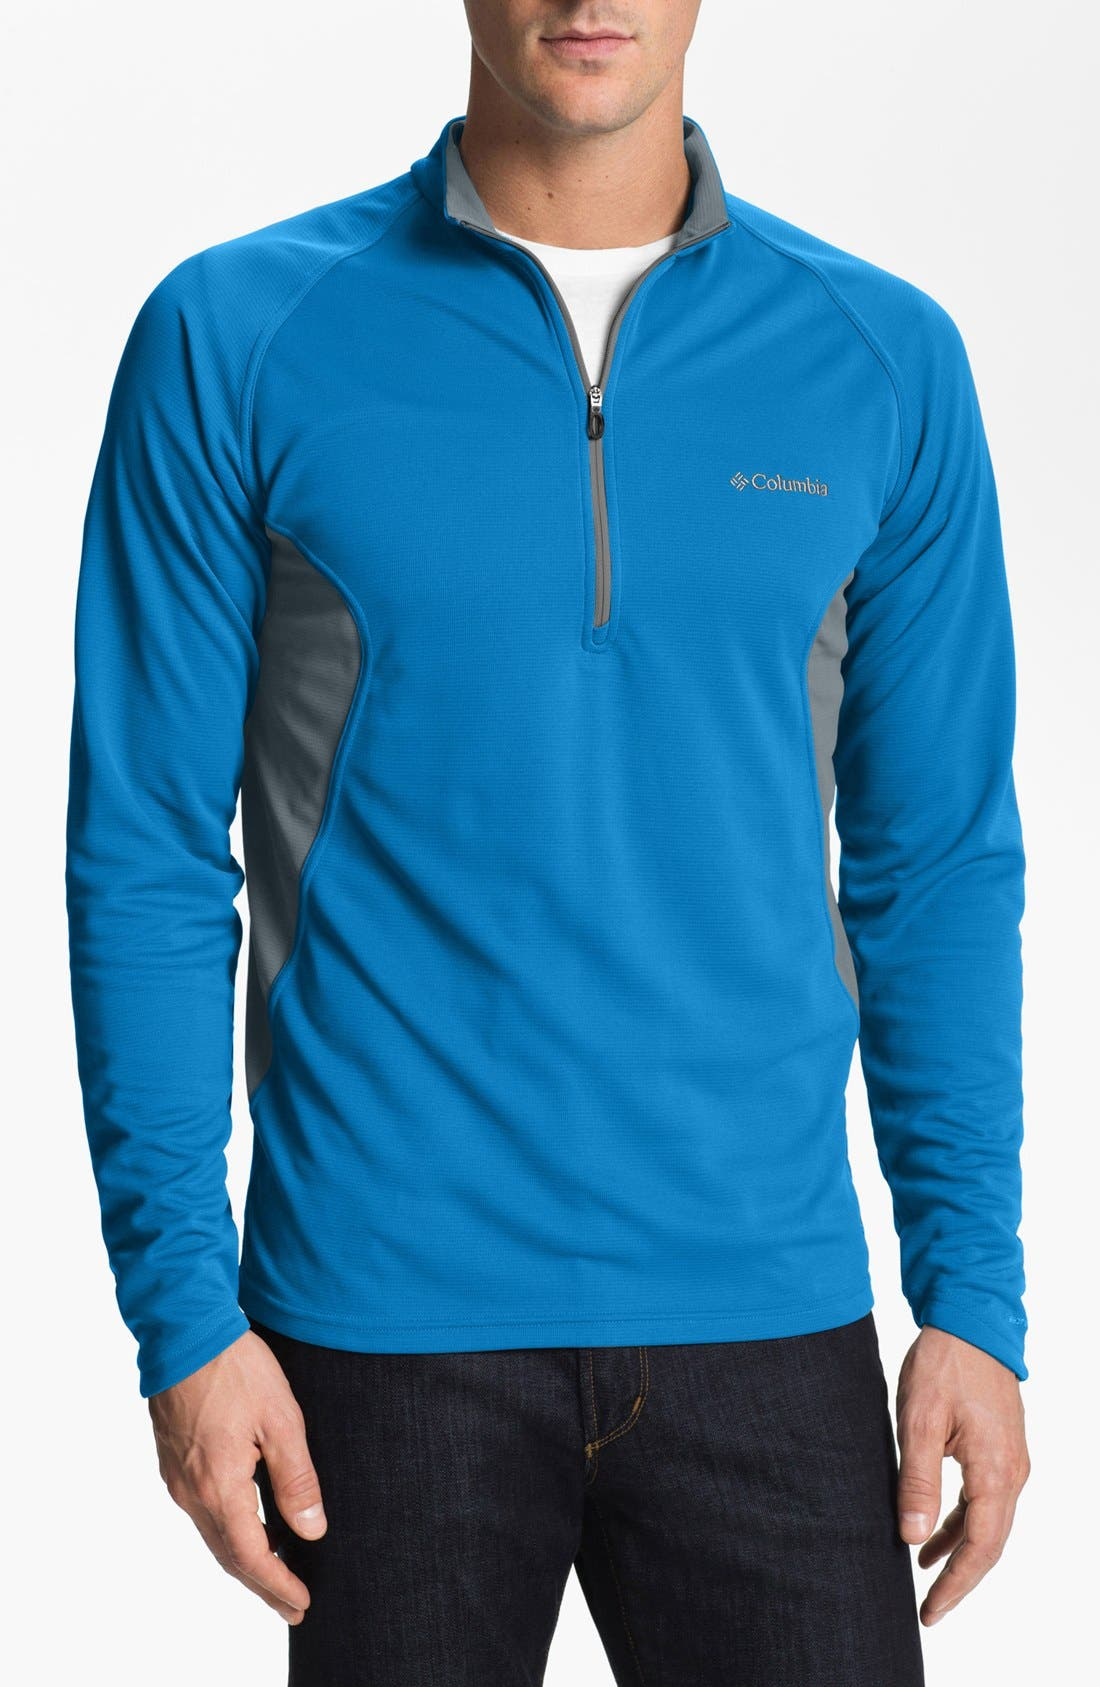 Alternate Image 1 Selected - Columbia 'Insect Blocker Sporty™' Half Zip Pullover